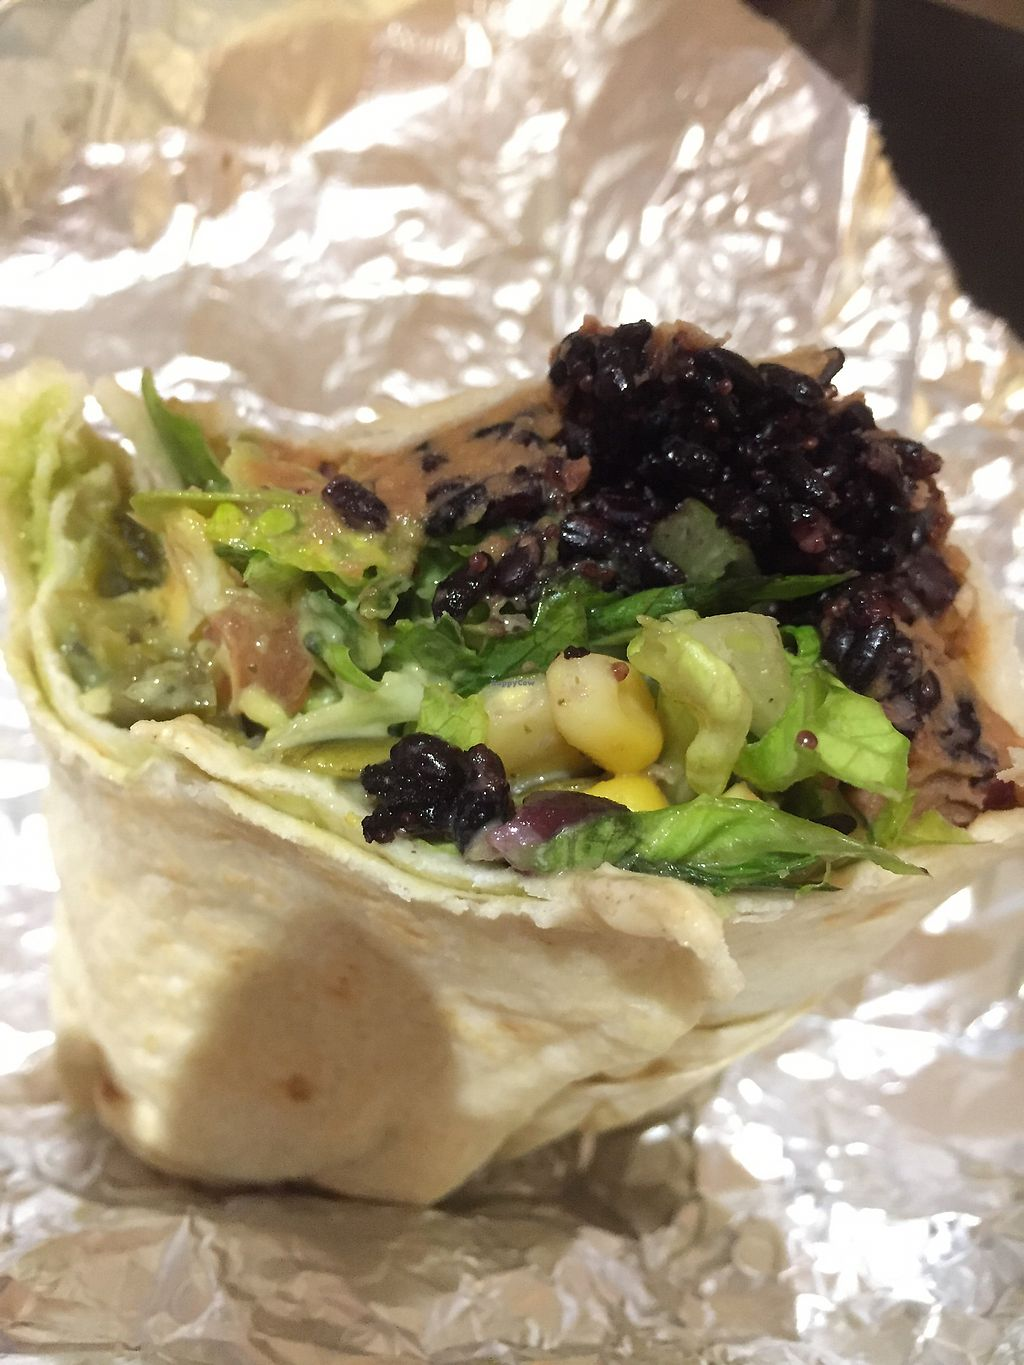 """Photo of Zambrero  by <a href=""""/members/profile/healthierlaura"""">healthierlaura</a> <br/>Qi I think it's called I asked for half the amount of black rice. so yummy  <br/> July 13, 2017  - <a href='/contact/abuse/image/80774/279763'>Report</a>"""